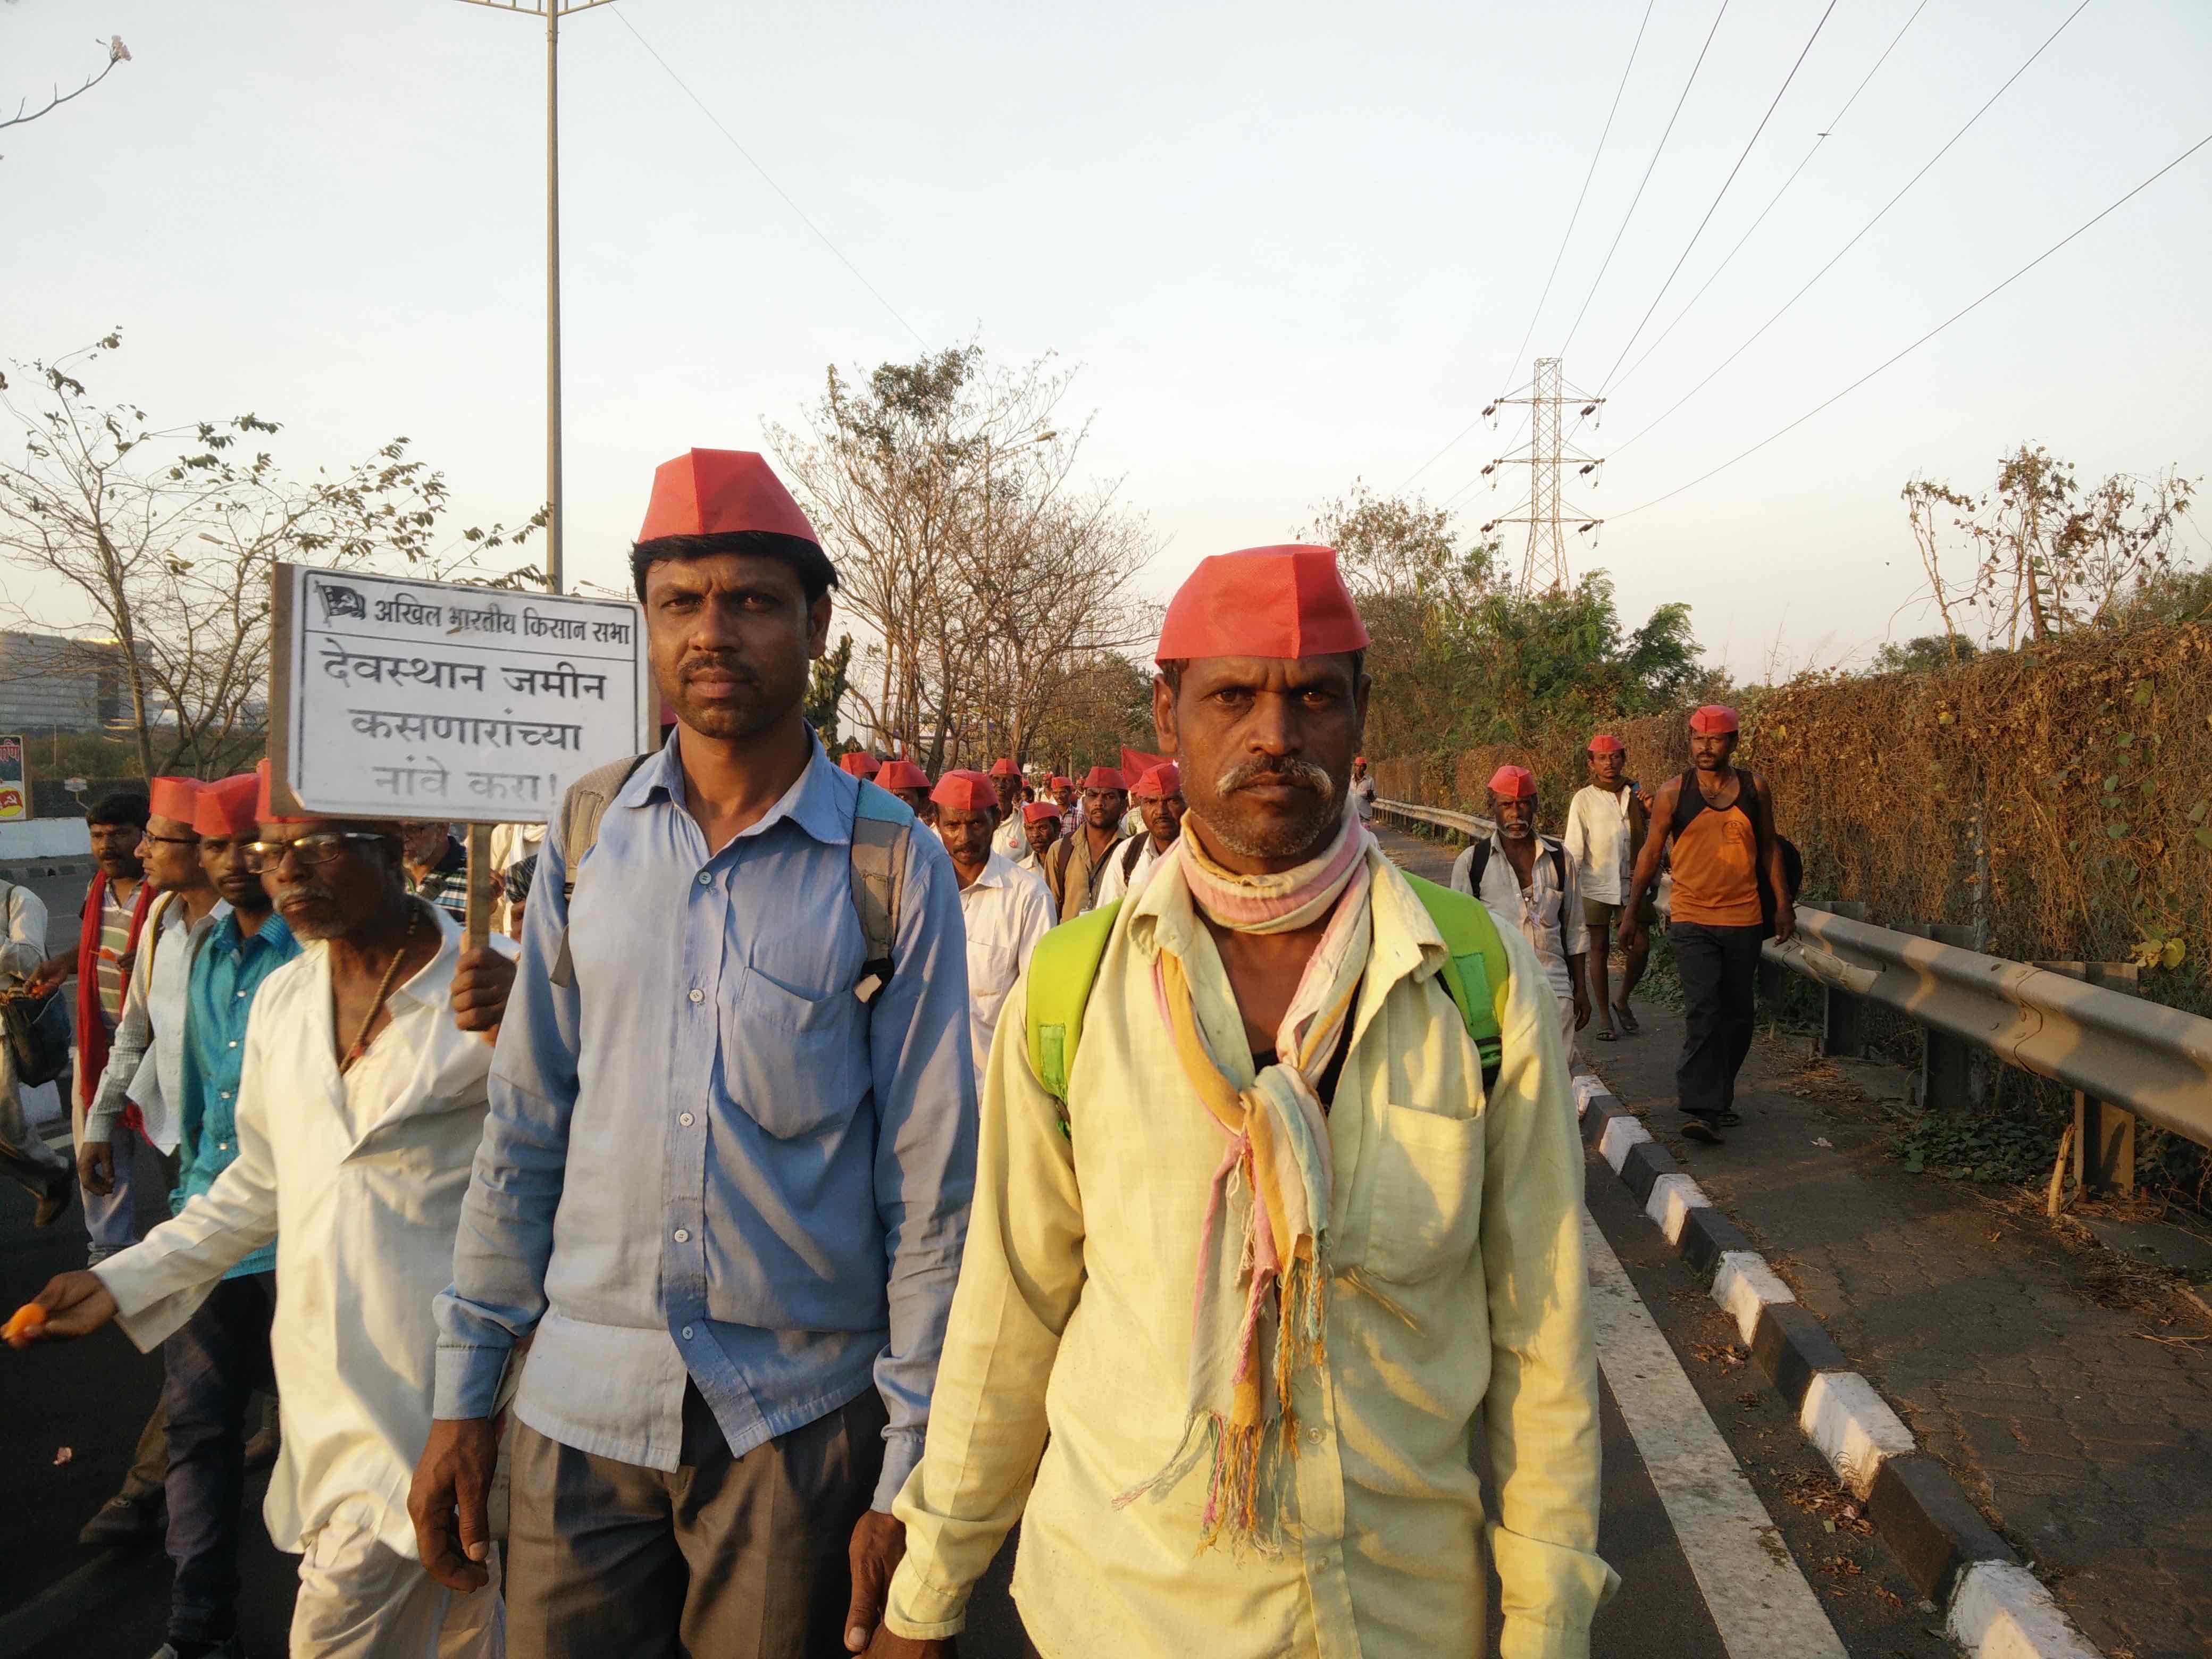 After 140 Hours of Walking, Maharashtra's Protesting Farmers Arrive in Mumbai